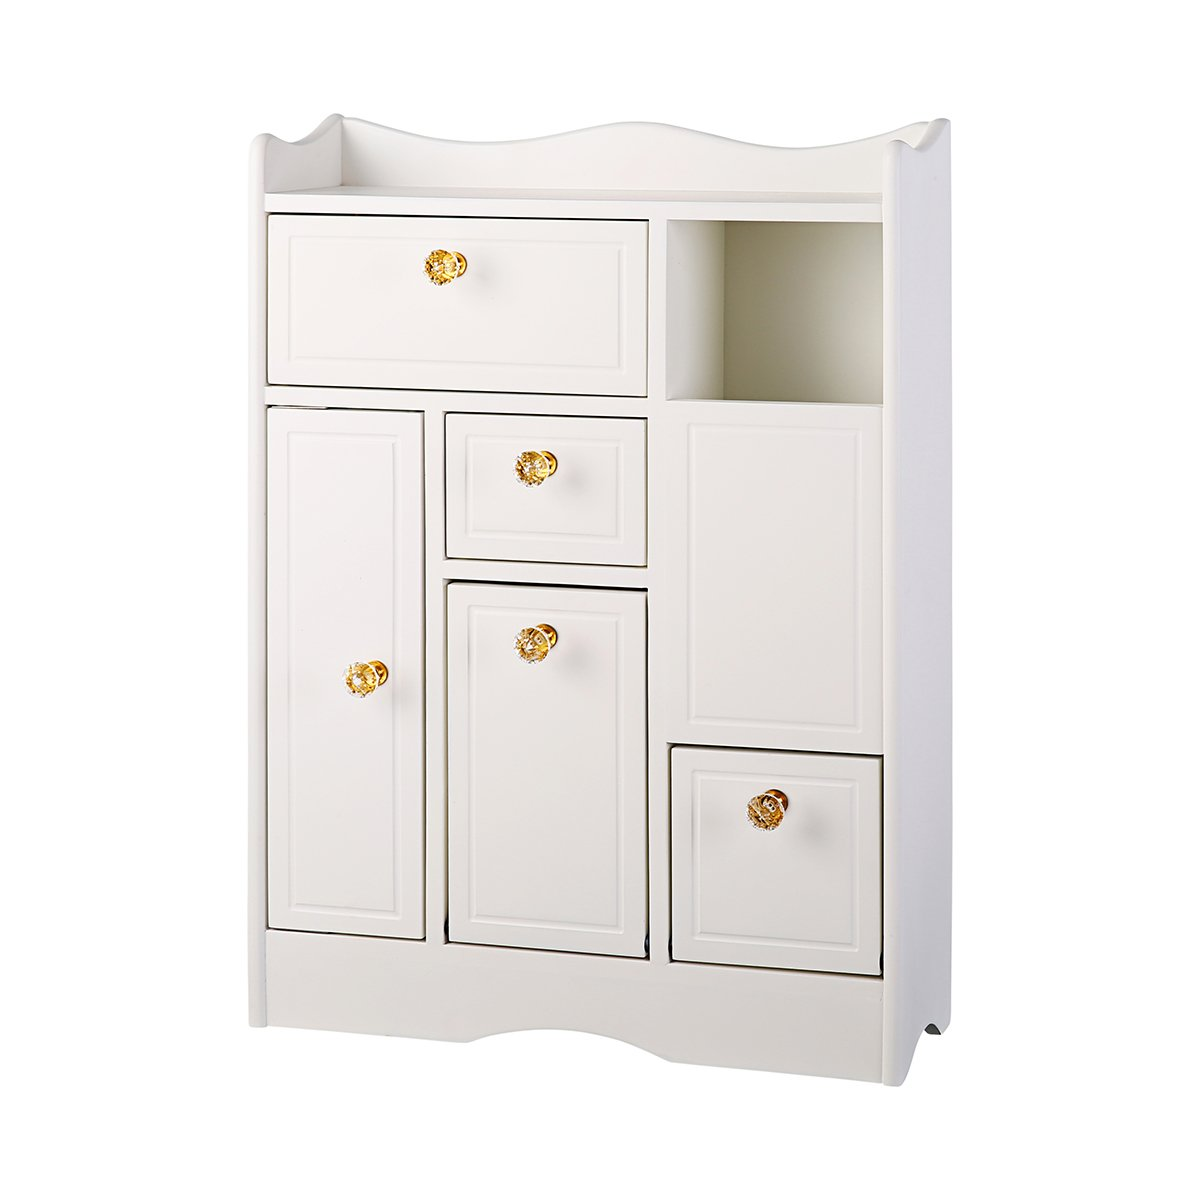 Teapround Bathroom Floor Storage Cabinet Tissue Dispenser White Drawer